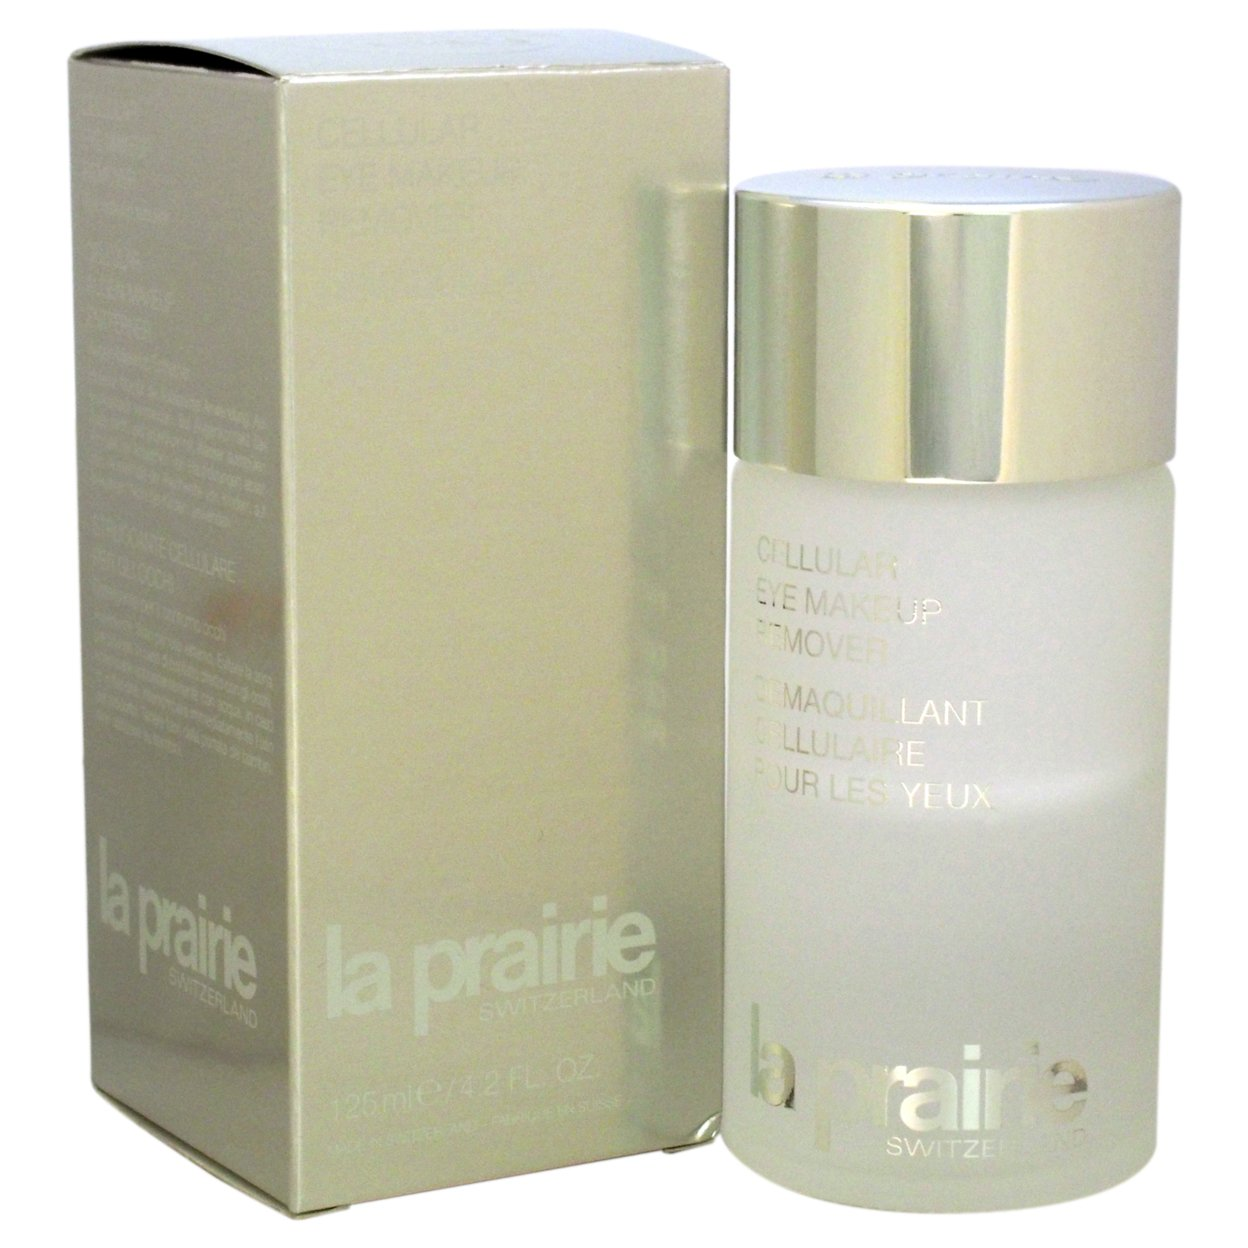 Cellular Eye Makeup Remover By La Prairie For Women 4.2 Oz Makeup Remover